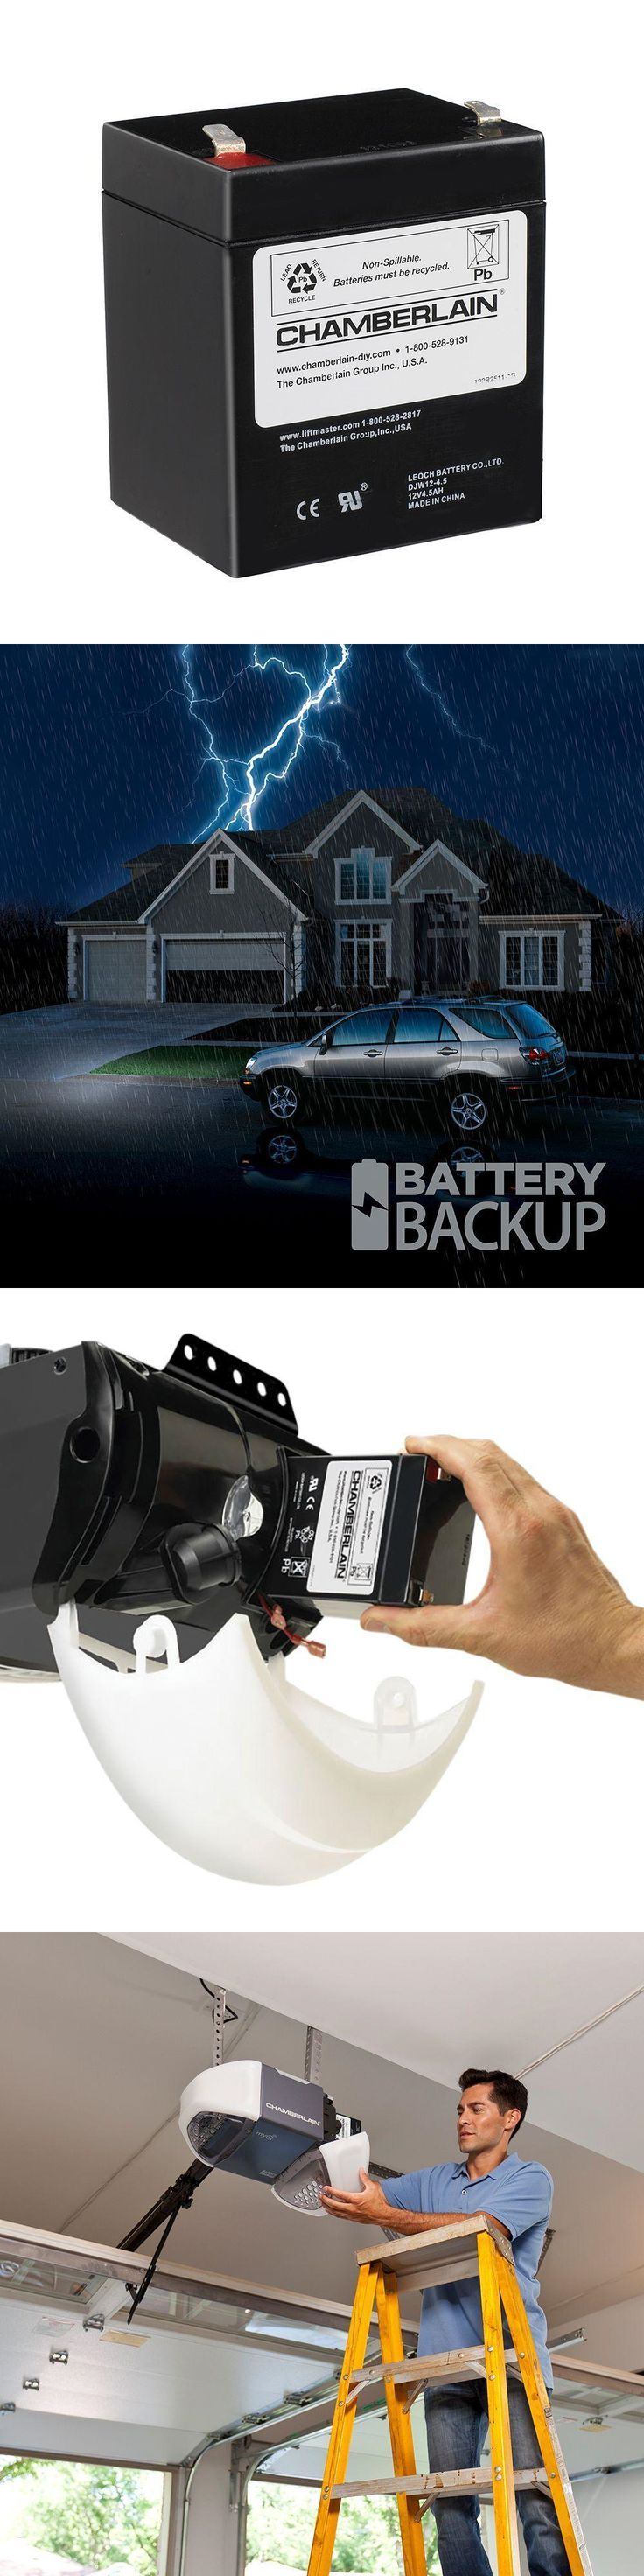 Opener Parts and Accessories 179688: Chamberlain Garage Door Opener Battery Replacement Rechargeable Backup Back-Up -> BUY IT NOW ONLY: $33.03 on eBay!